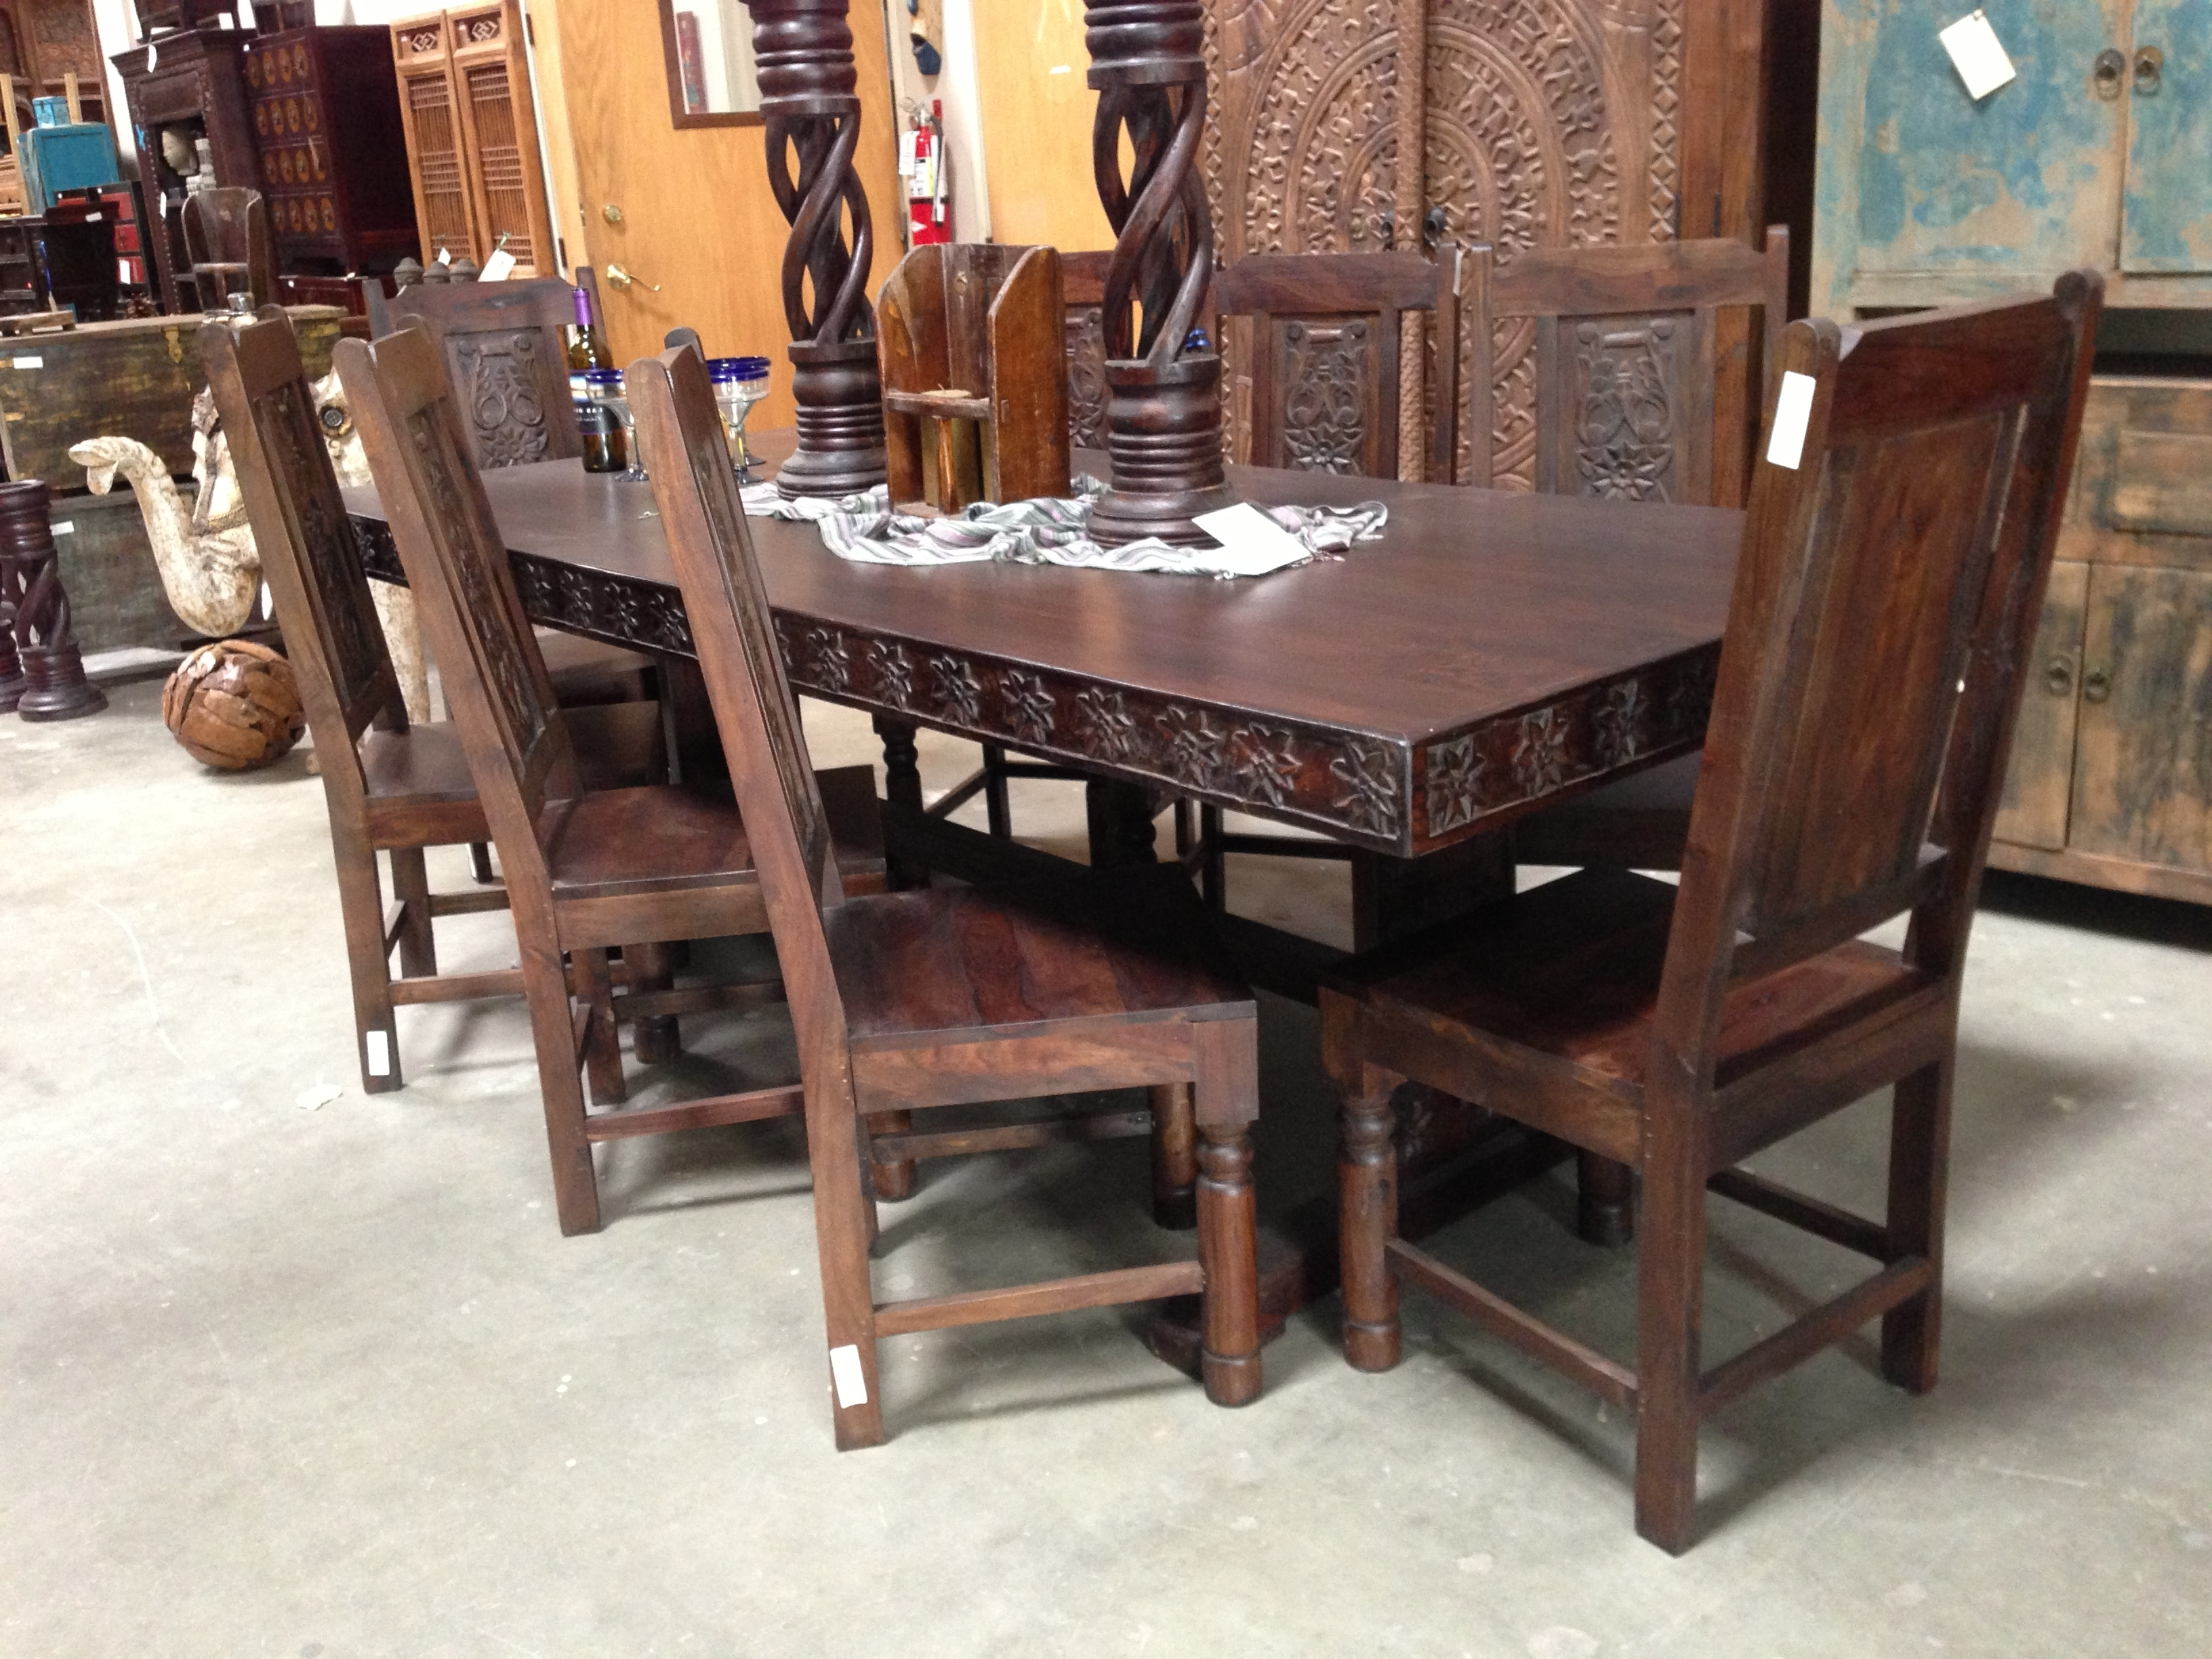 Famous Wood Dining Tables In San Diego (View 6 of 25)